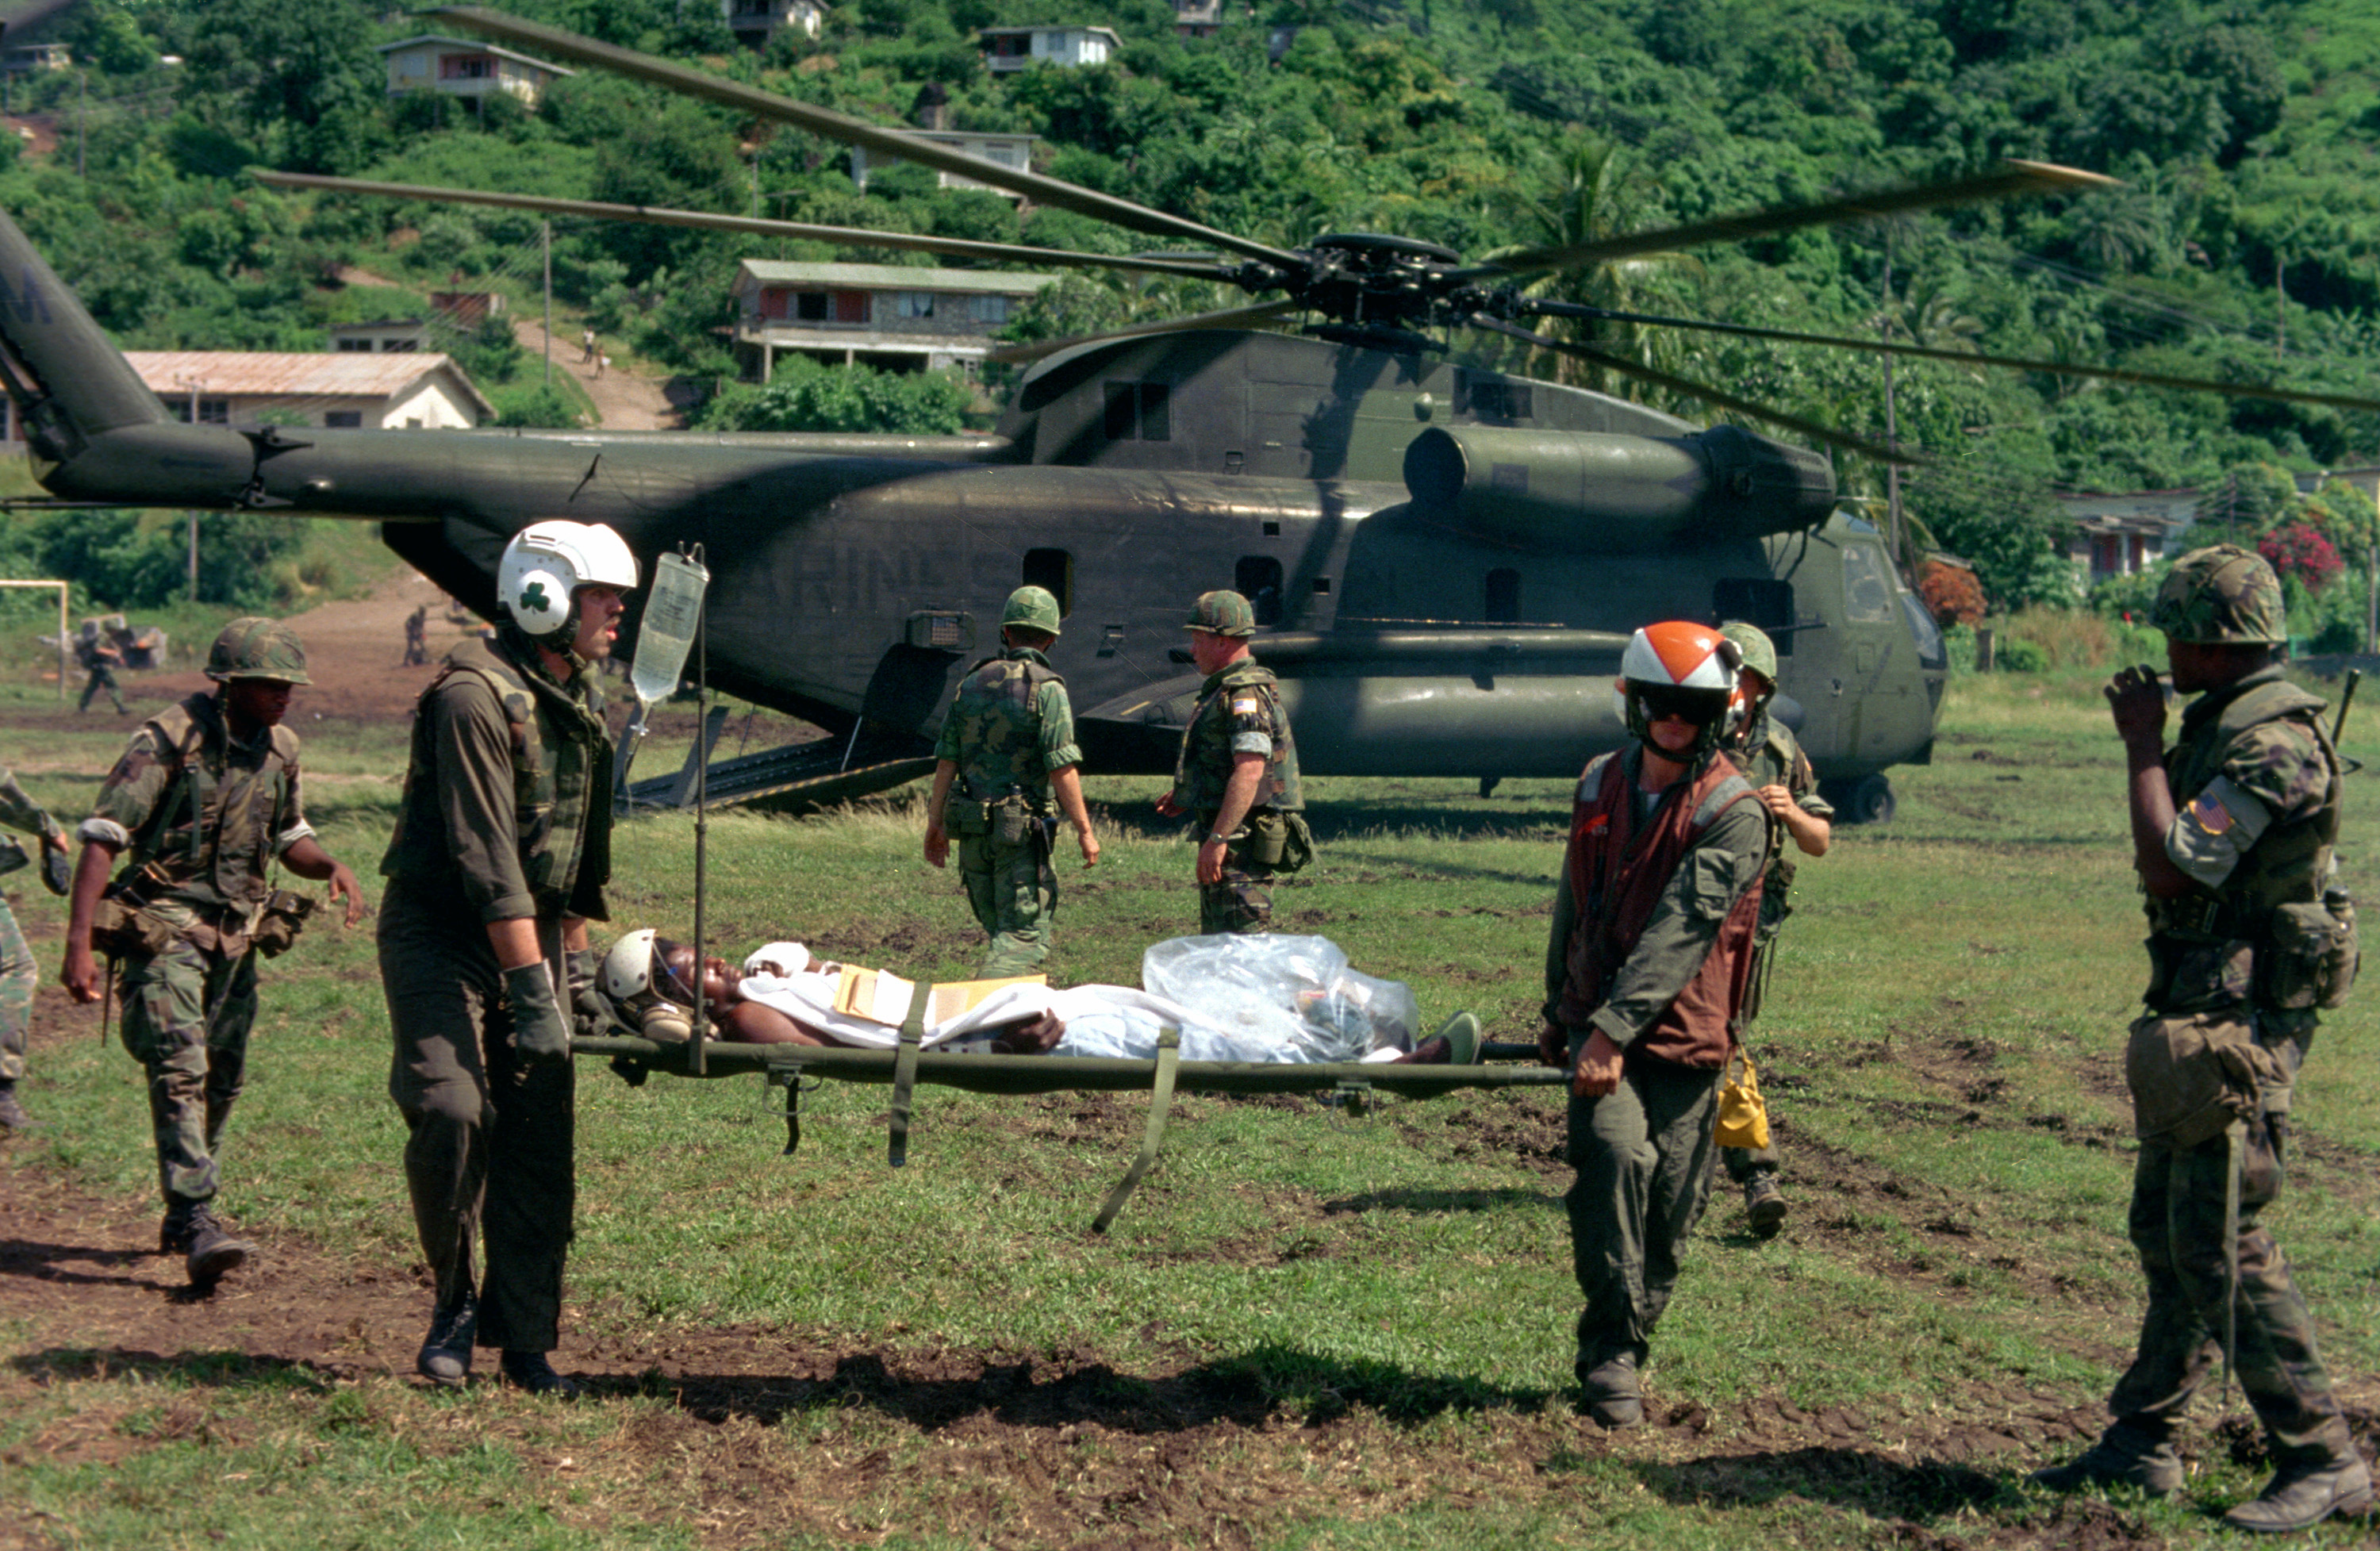 CH-53D_with_wounded_soldier_Grenada_1983